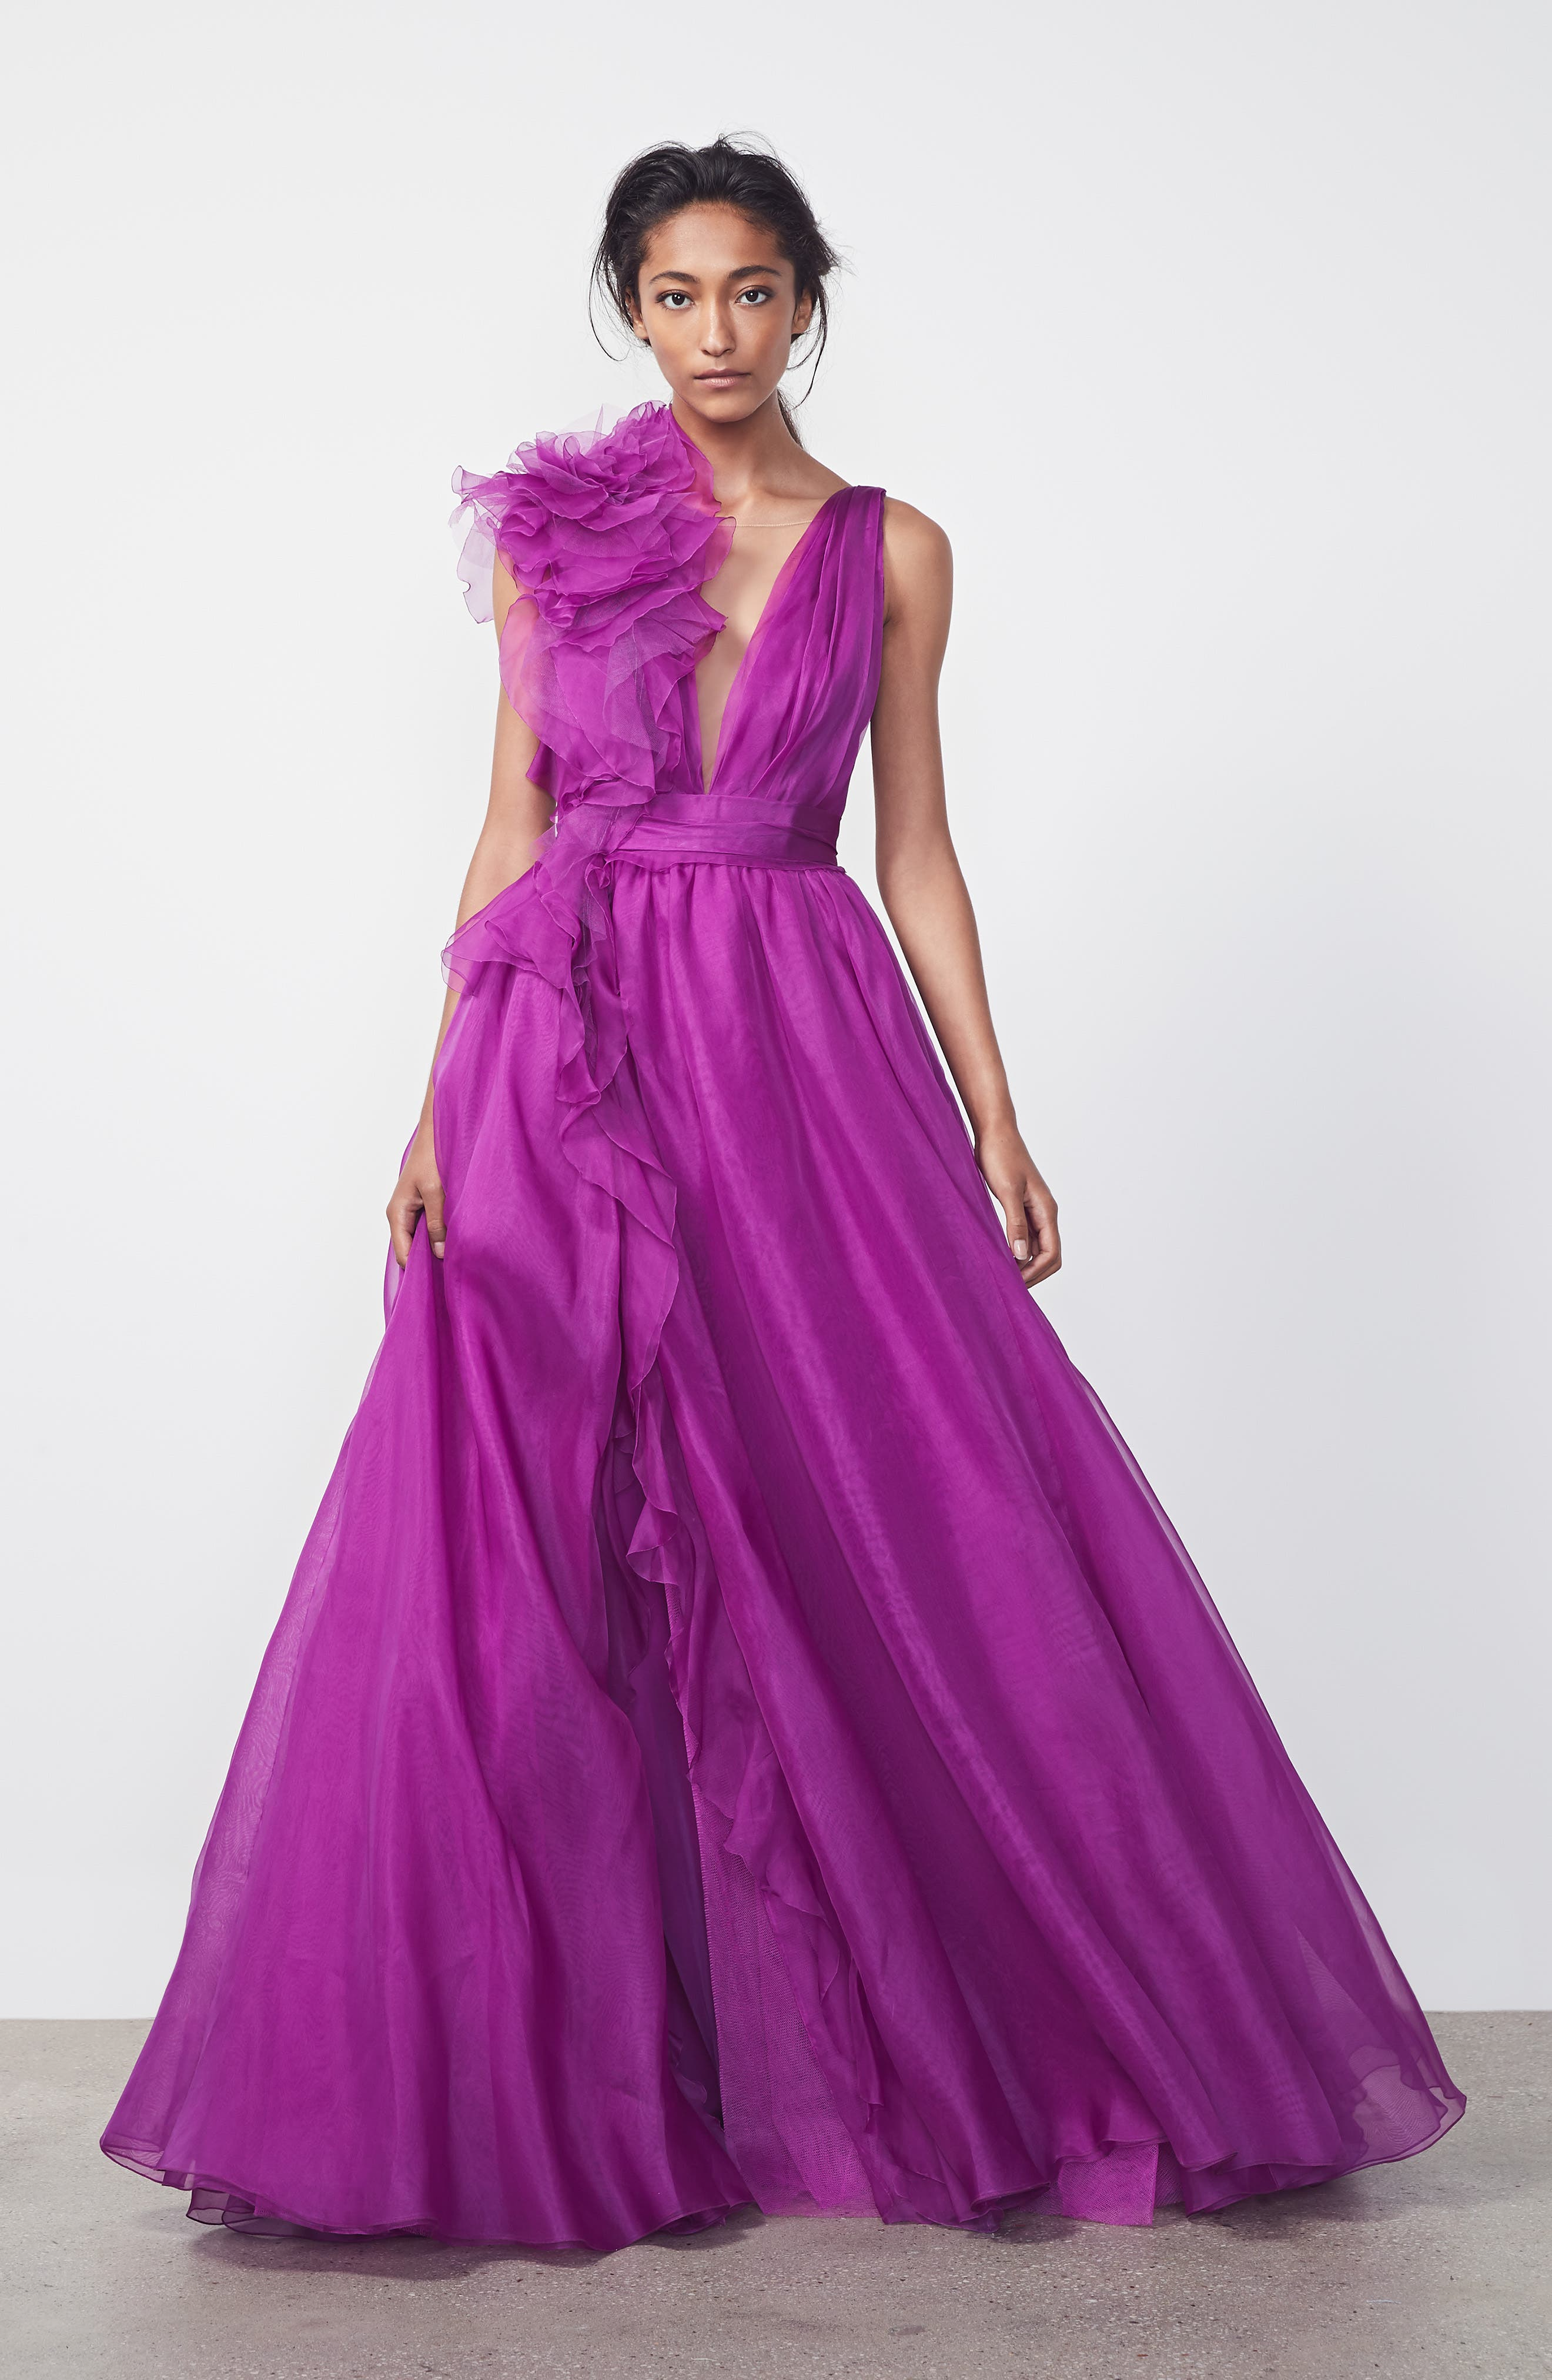 Ruffle Silk Organza Evening Dress,                             Alternate thumbnail 6, color,                             ORCHID